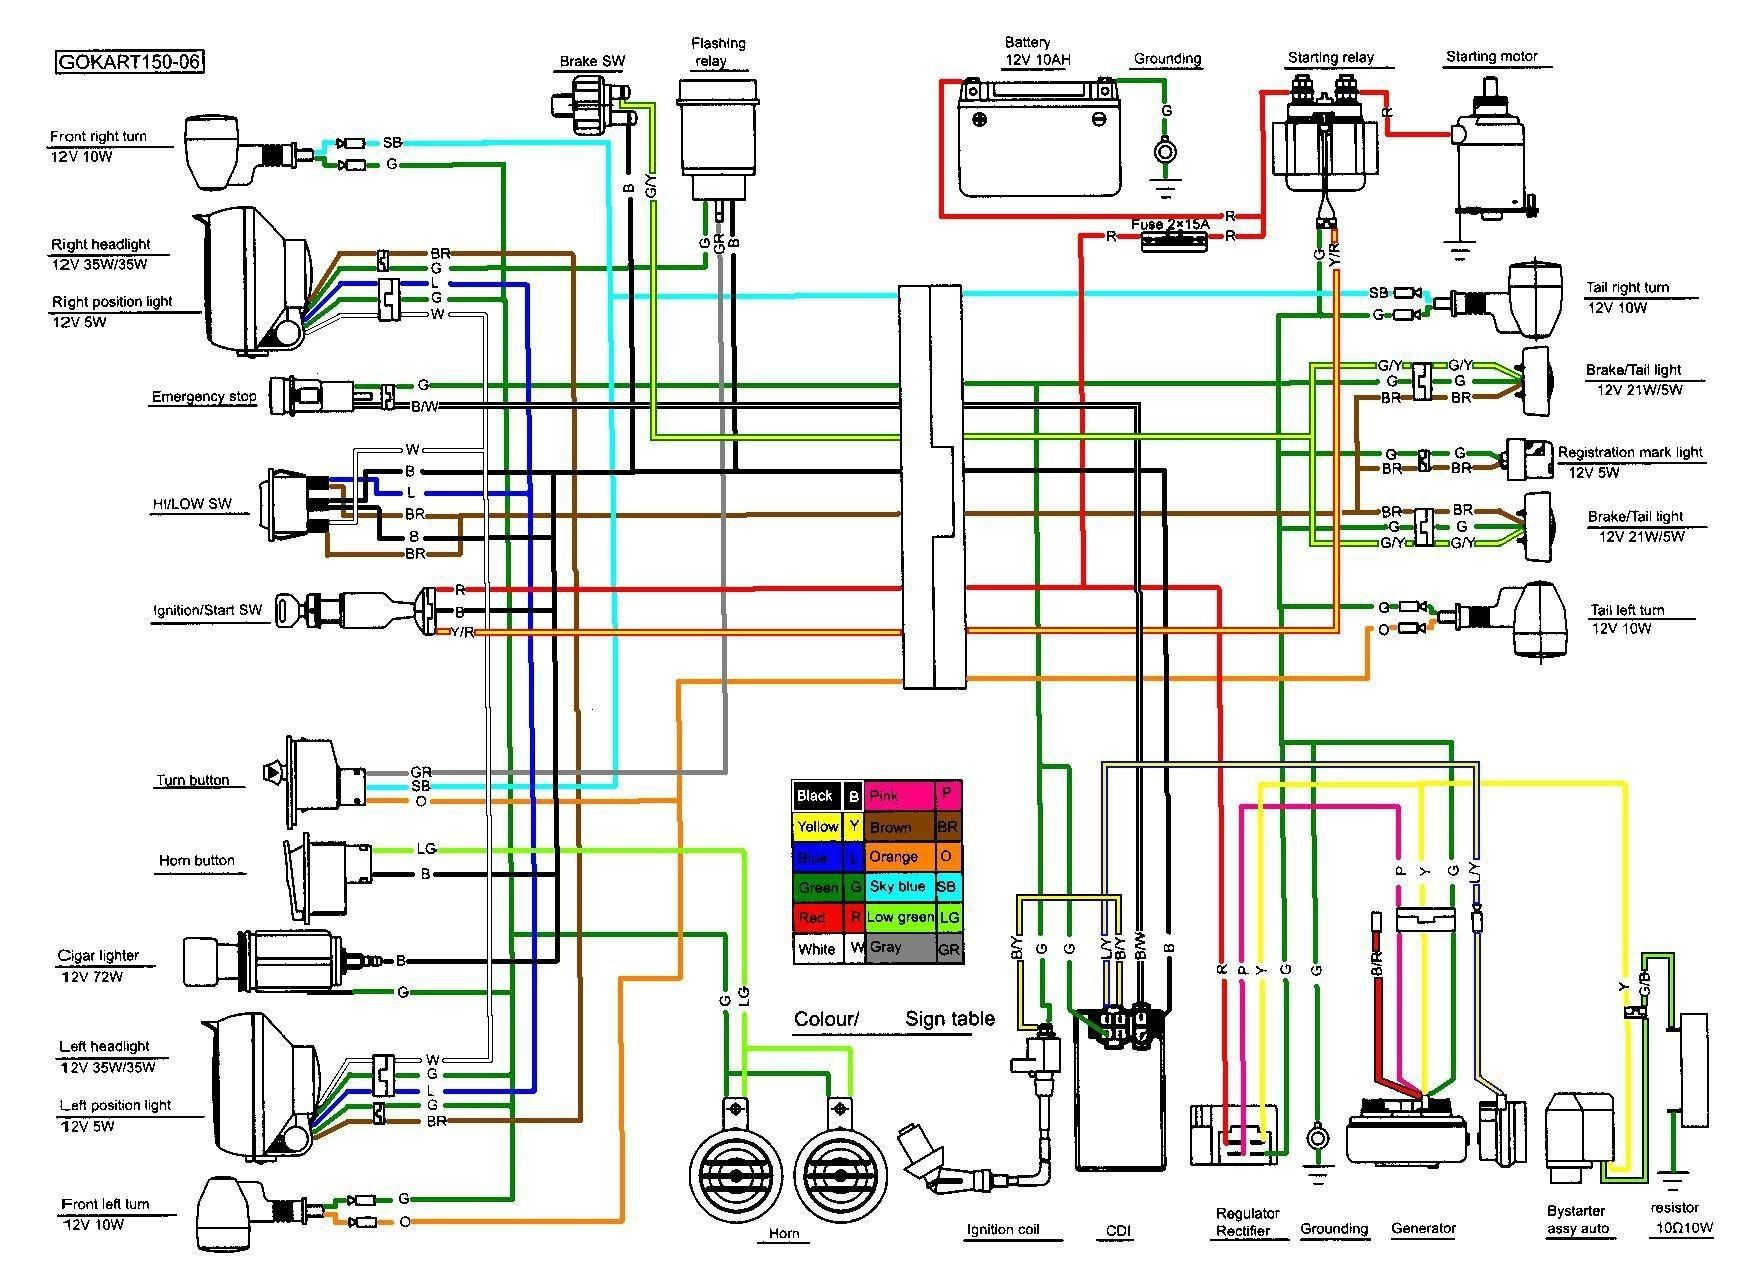 momed free yamaha wiring diagrams wiring diagram listmio yamaha wiring diagram wiring diagram fascinating momed free [ 1748 x 1267 Pixel ]